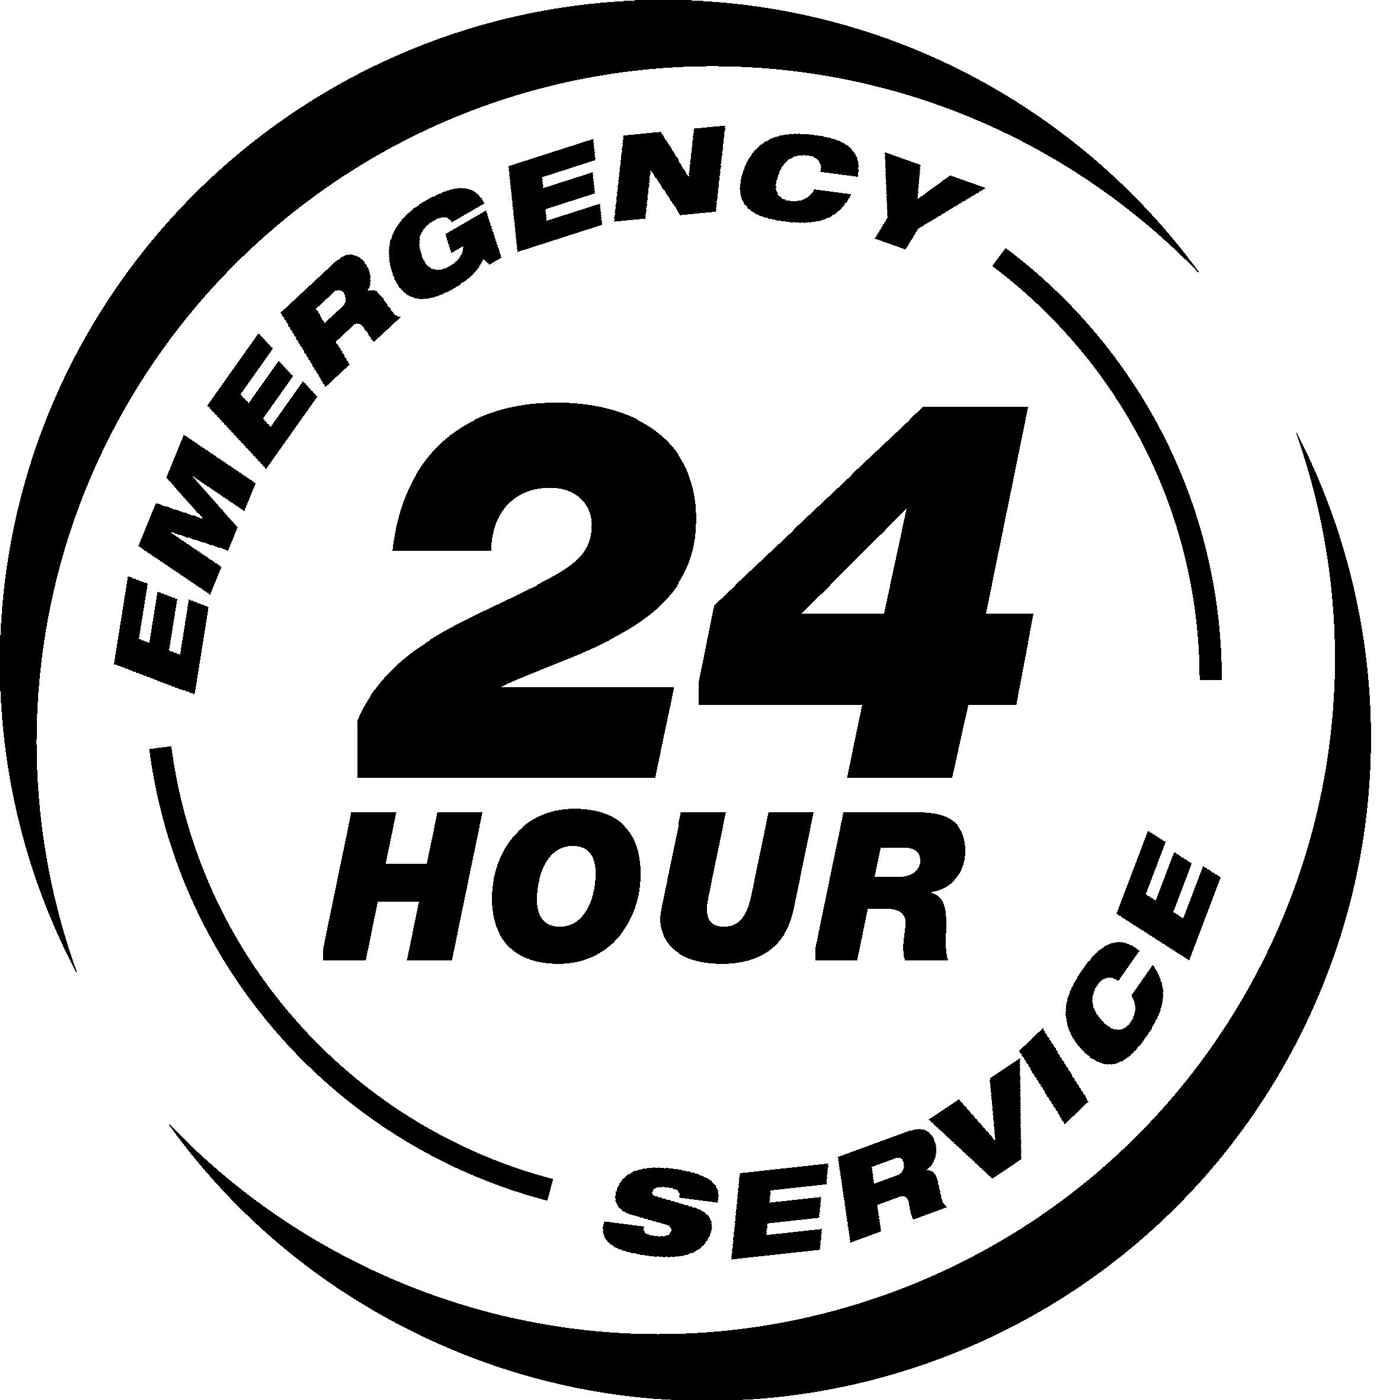 Emergency-24-Hour-Service2